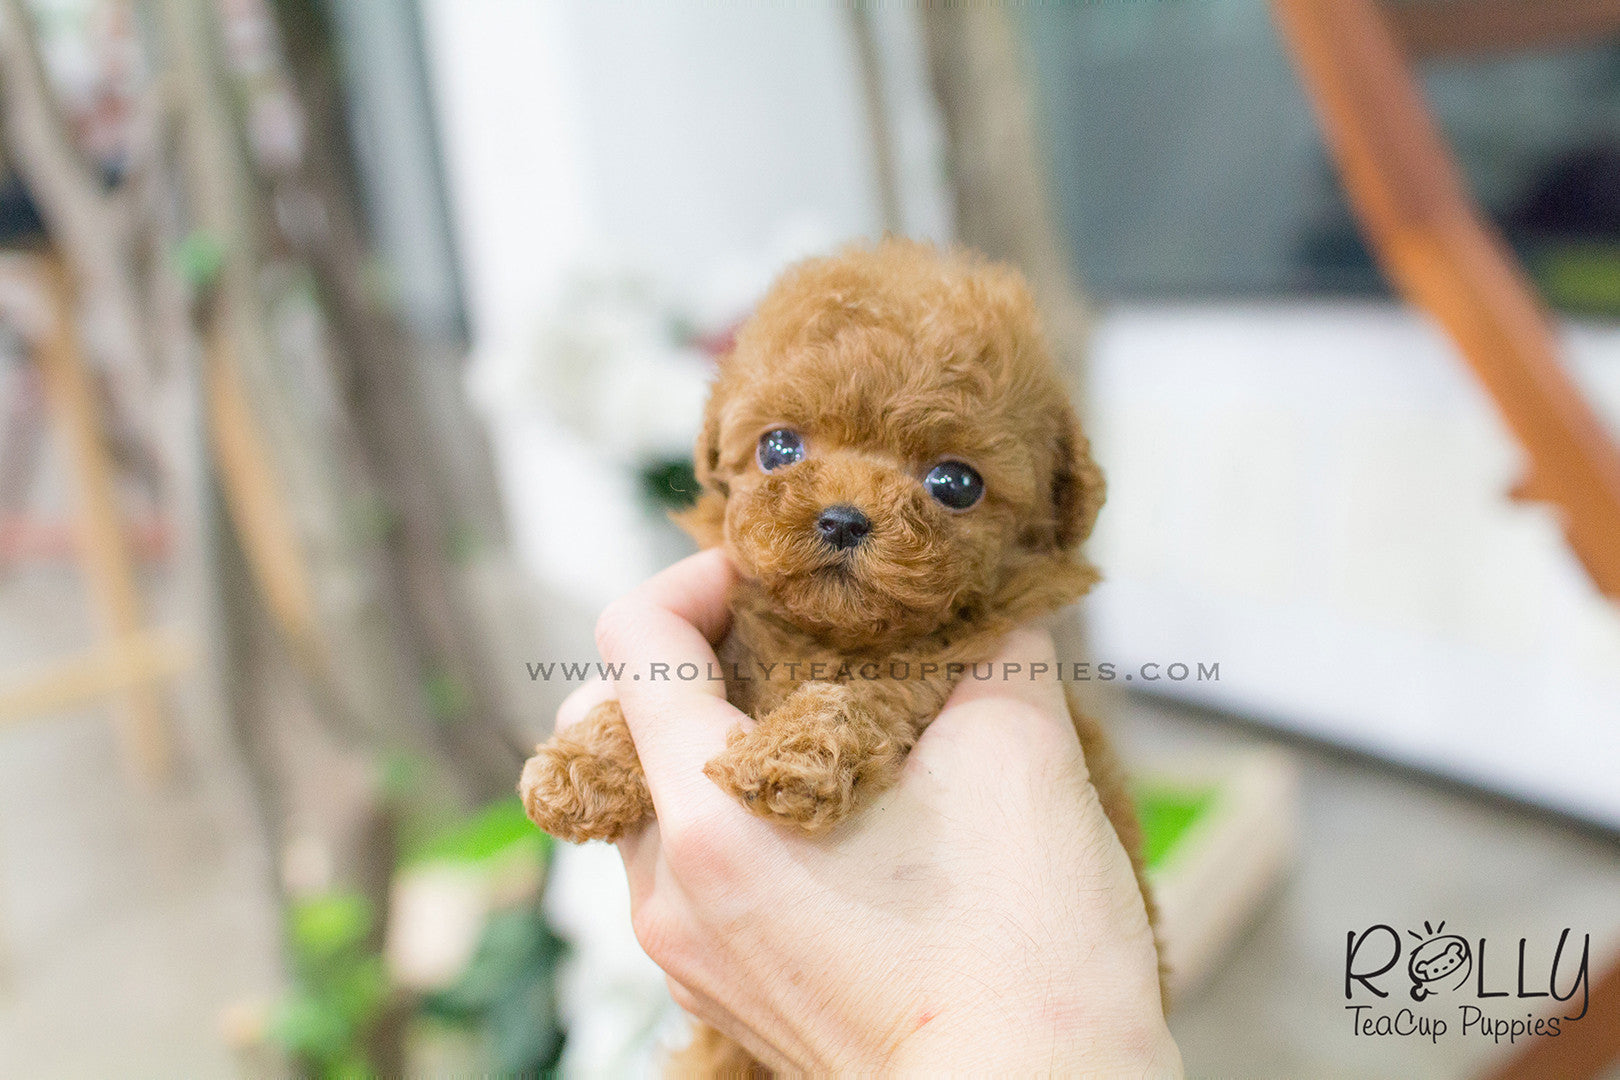 Bambi - Poodle– Rolly Teacup Puppies